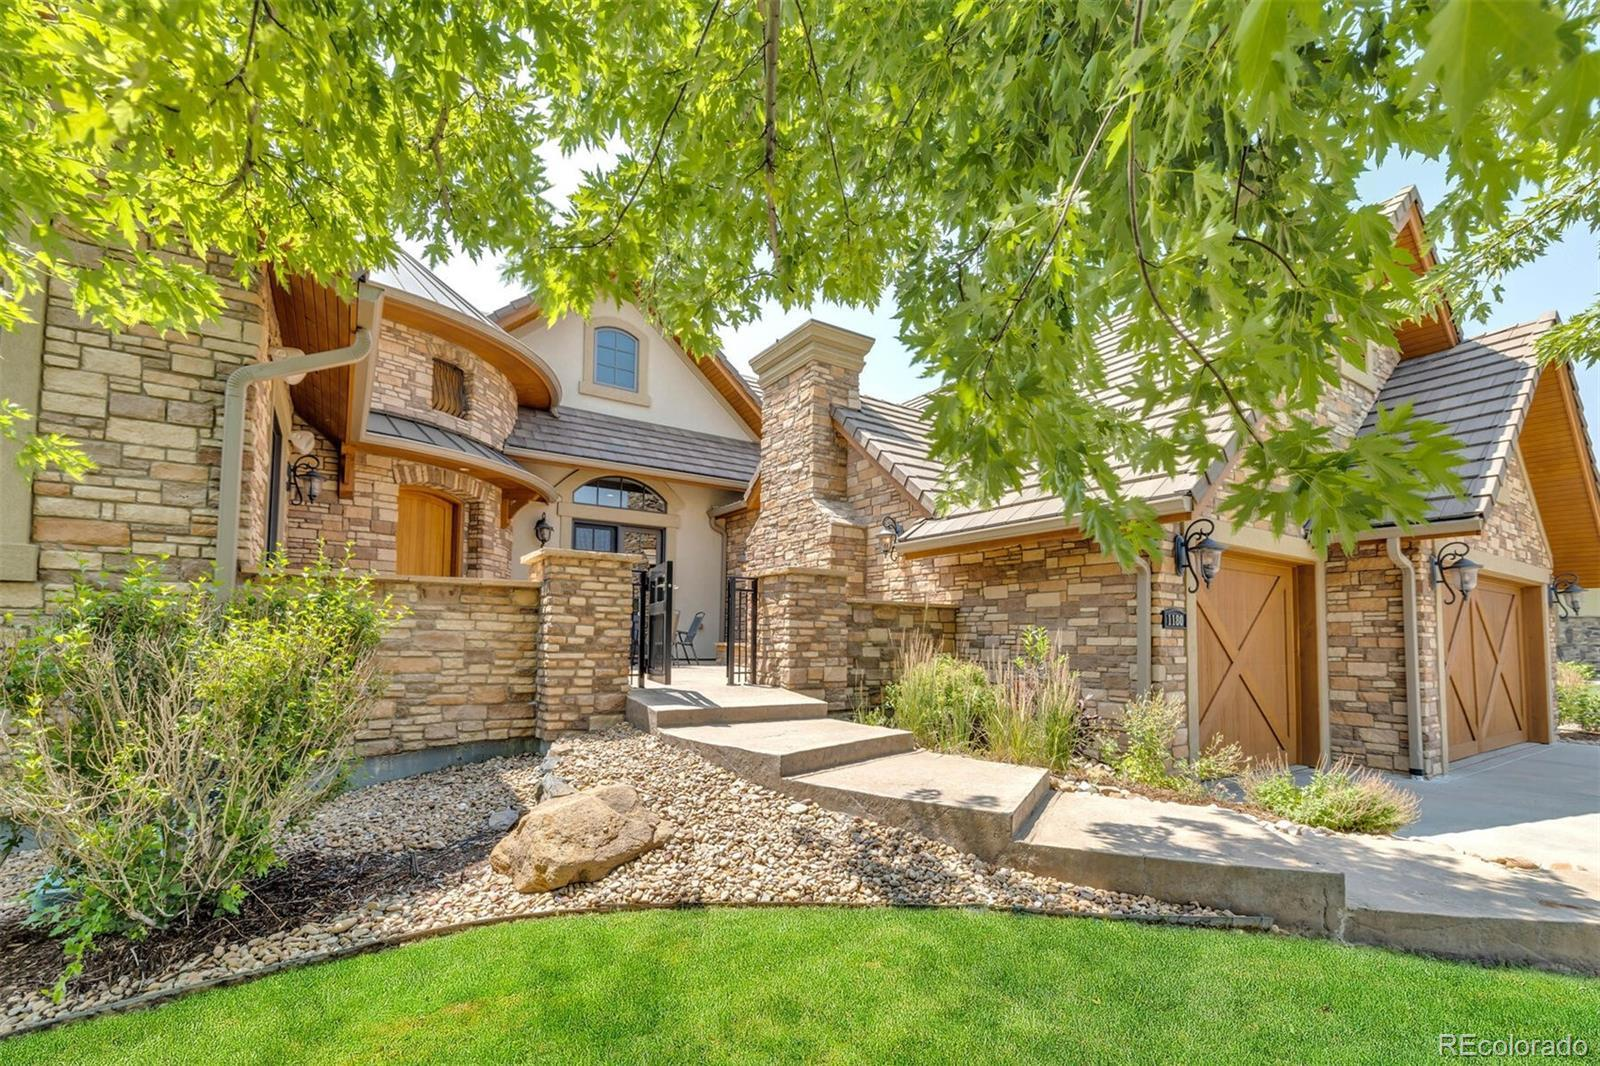 1180 W 141st Circle, Westminster, CO 80023 - #: 3406984